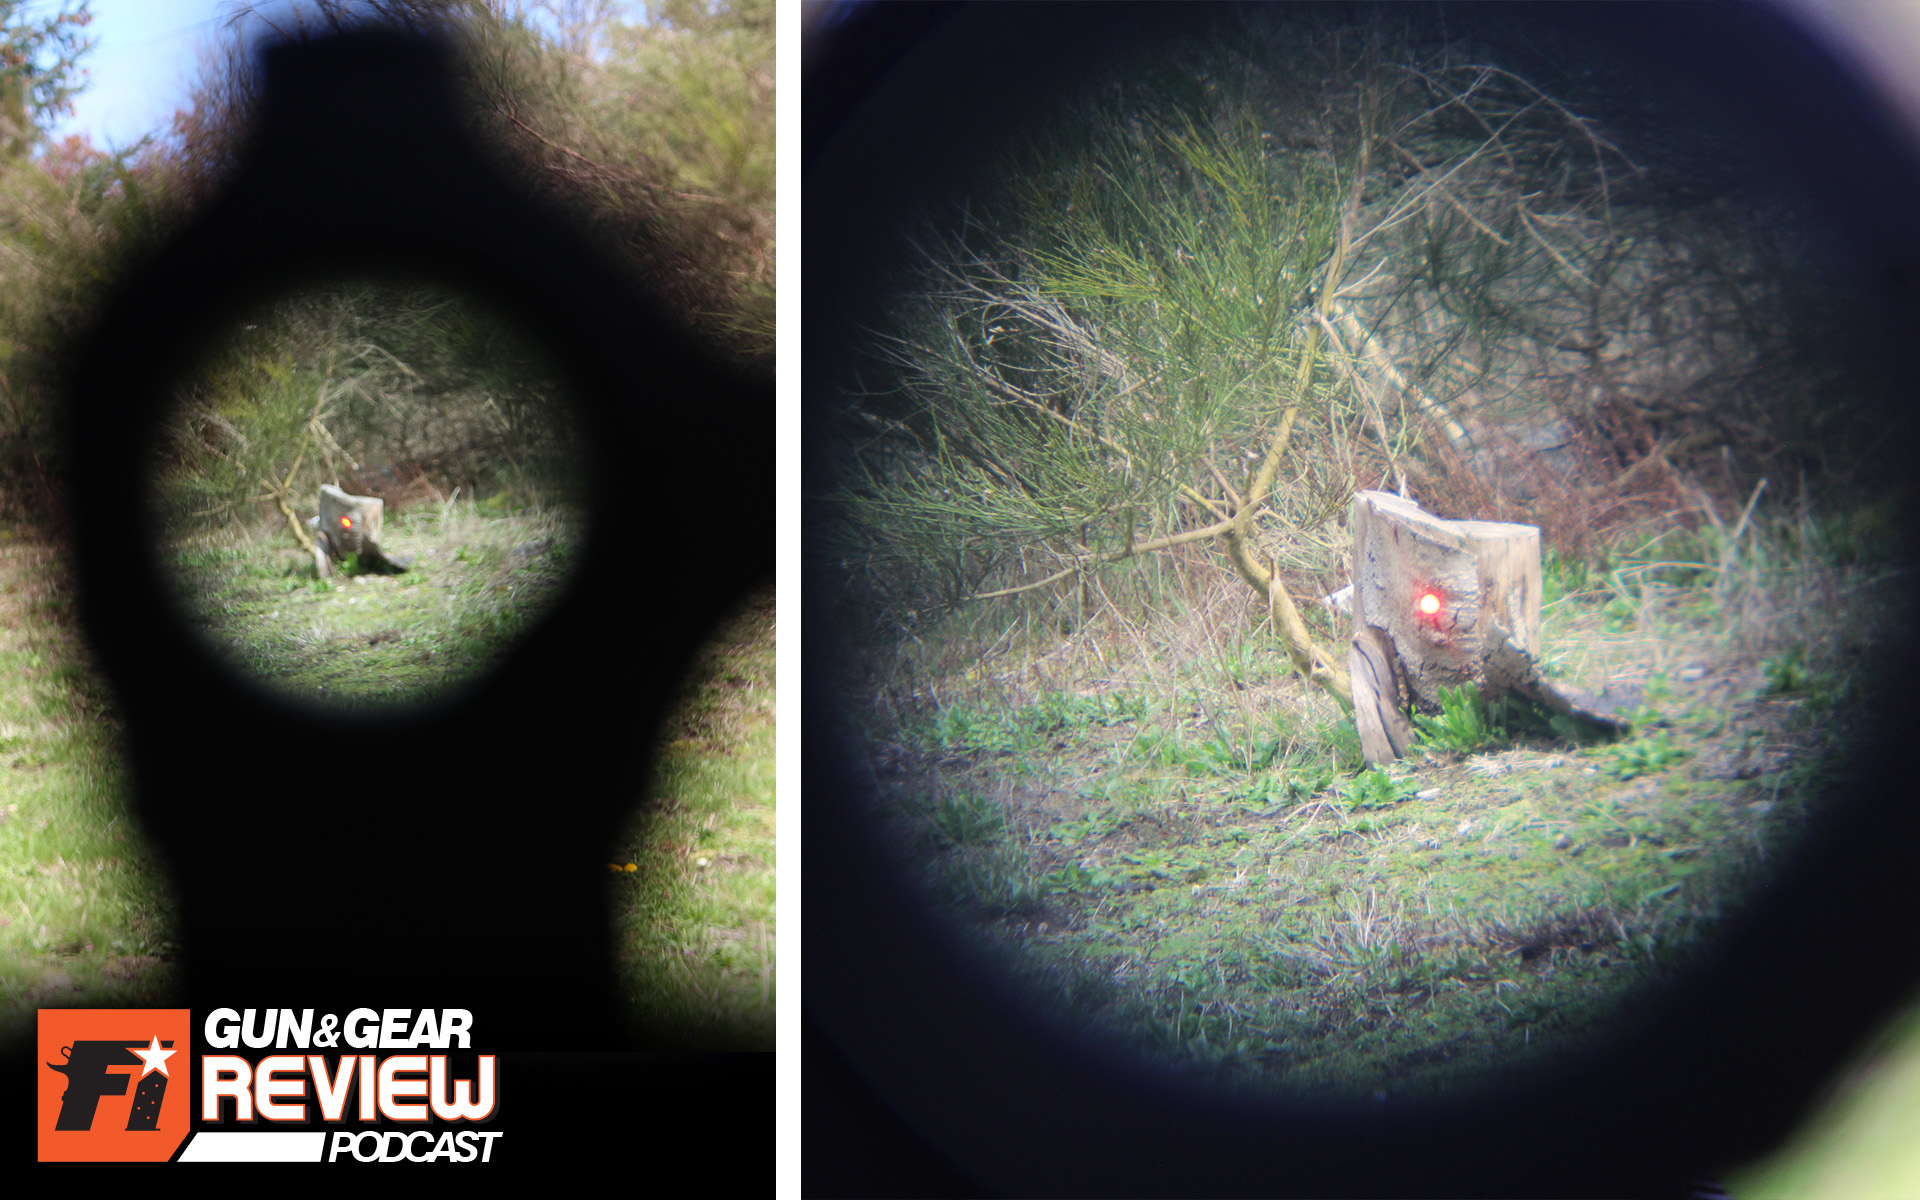 Even at distances inside 50 yards, the magnified view (right) offers more detail than the naked red dot (left). 3x might not be as helpful at 100 yards, but its a hell of a difference than without magnification at all.